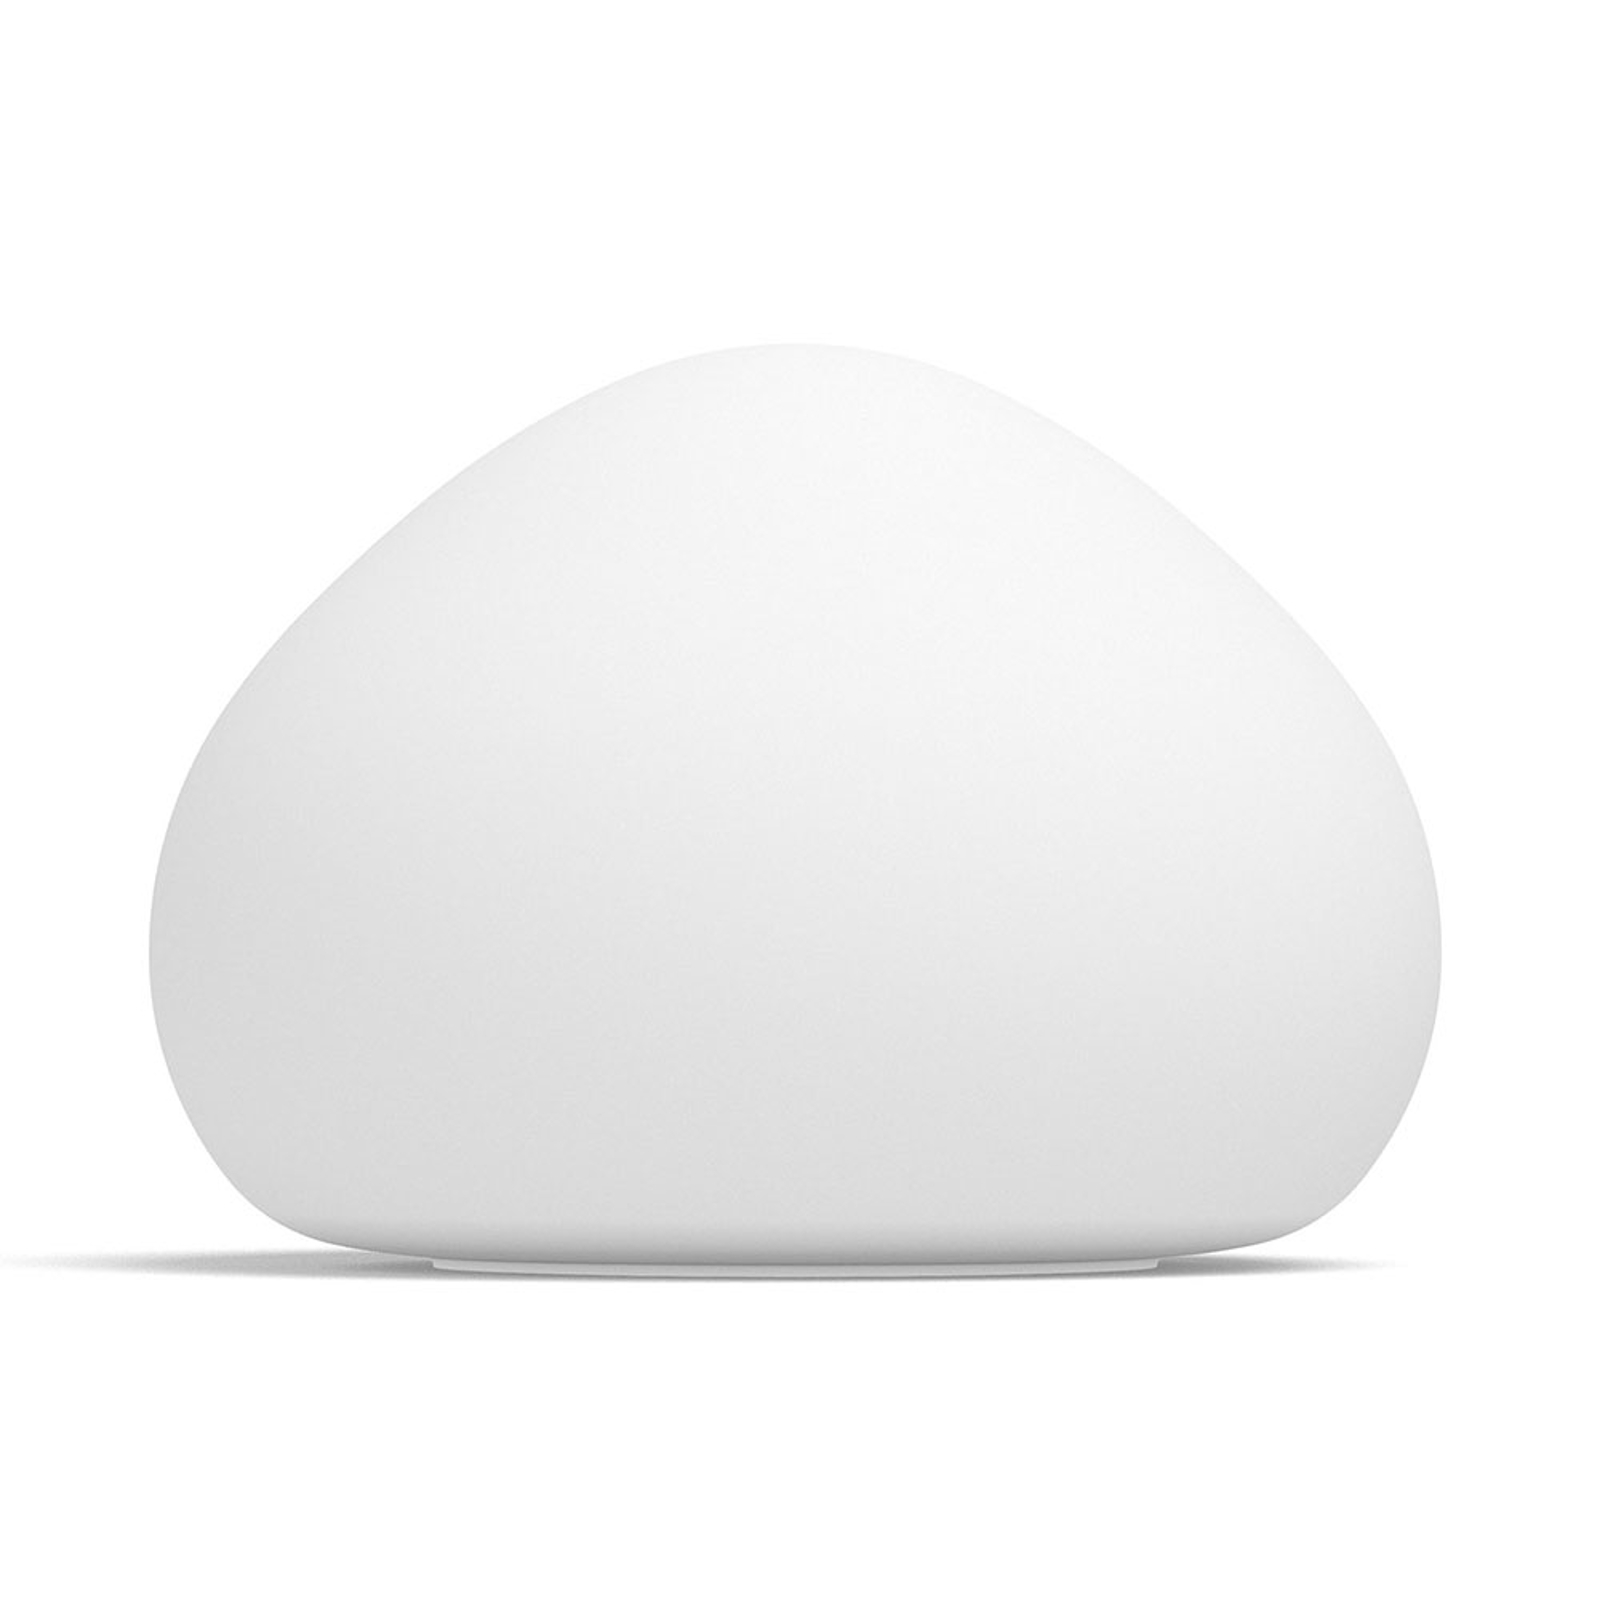 Philips Hue White Ambiance Wellner lampe table LED